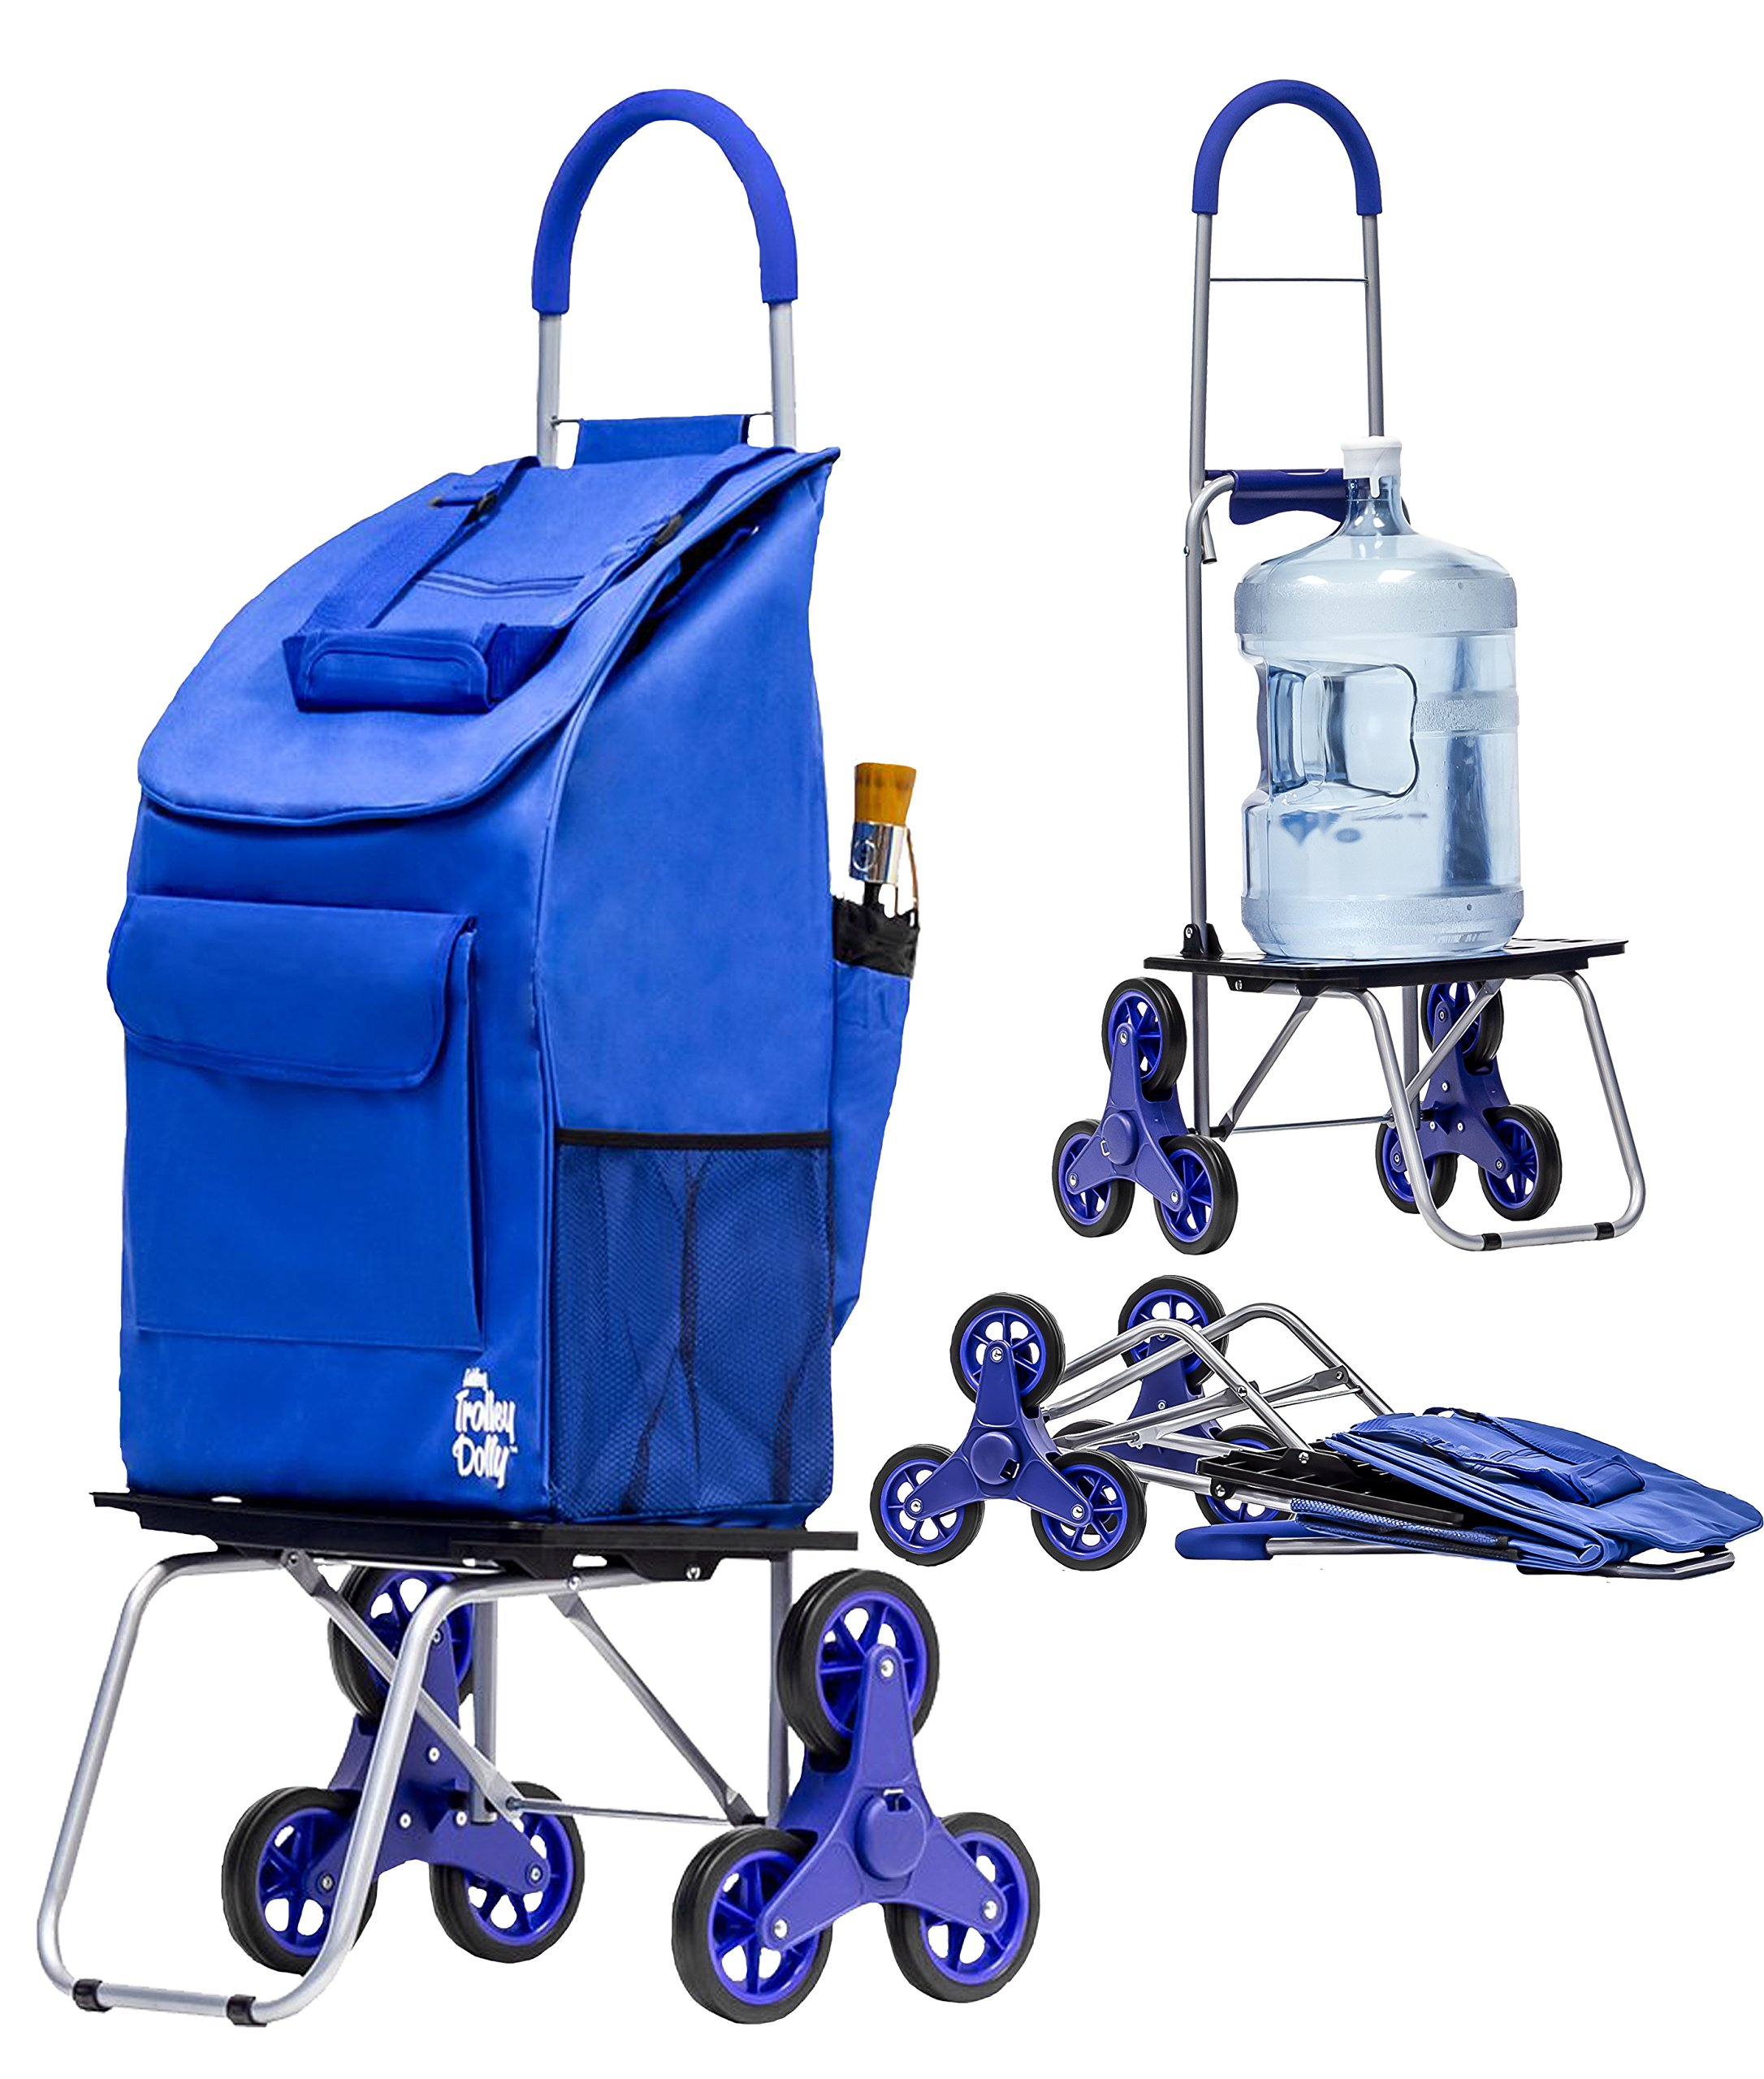 42d642046449 Details about Stair Climber Bigger Trolley Dolly Shopping Cart, Blue